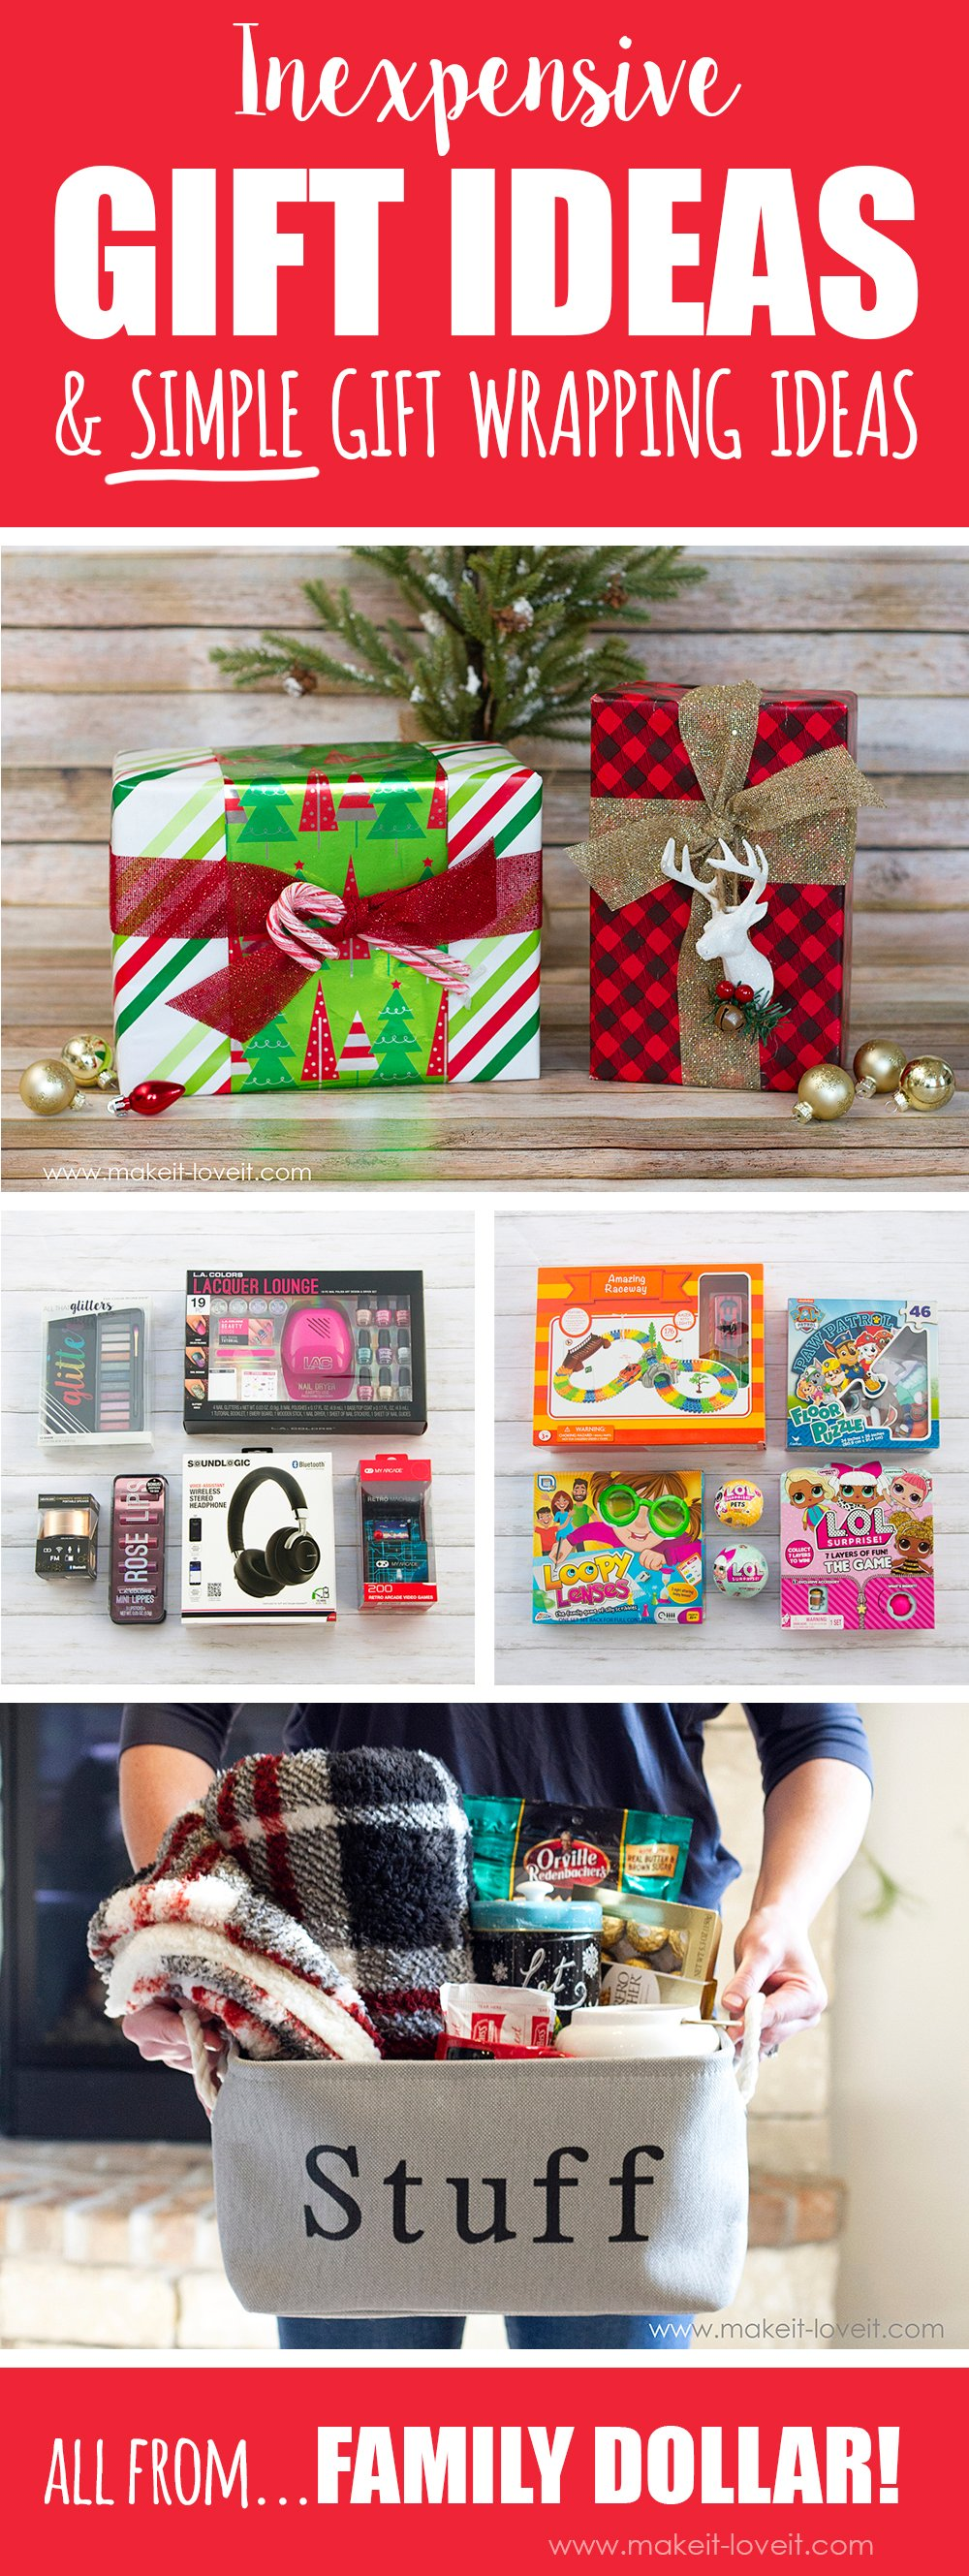 Gift ideas and gift wrapping ideas 1